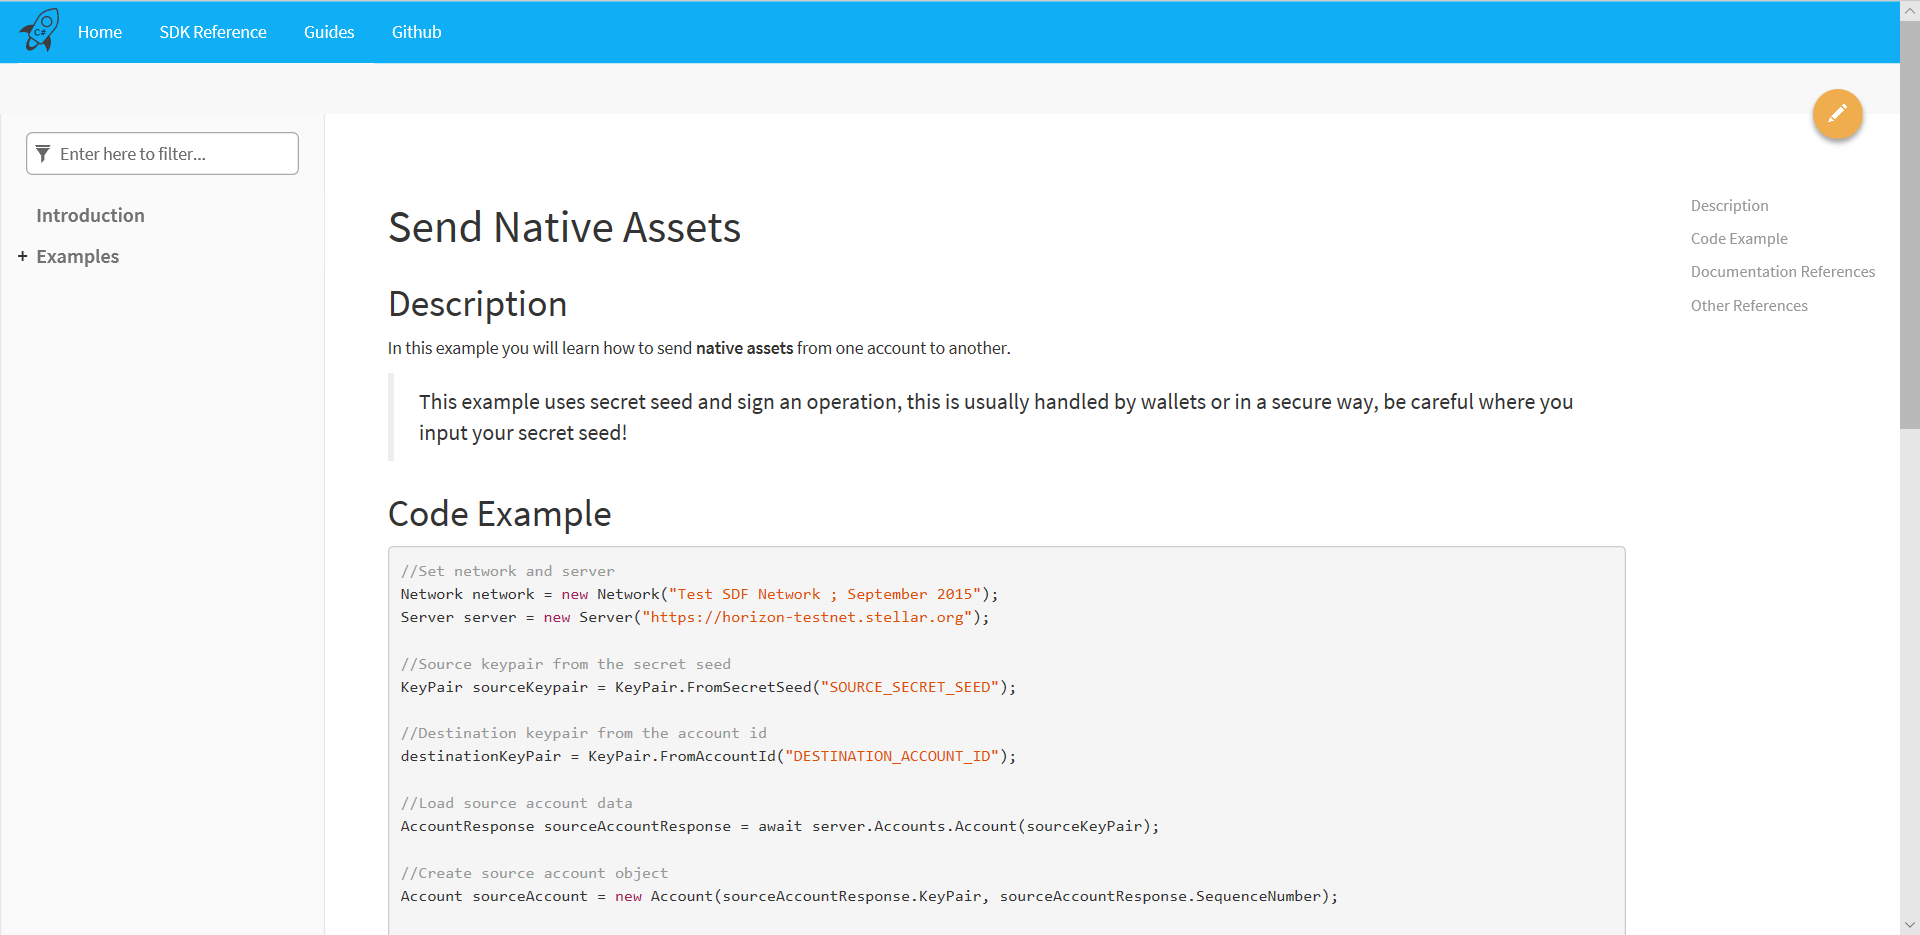 Send Native Assets